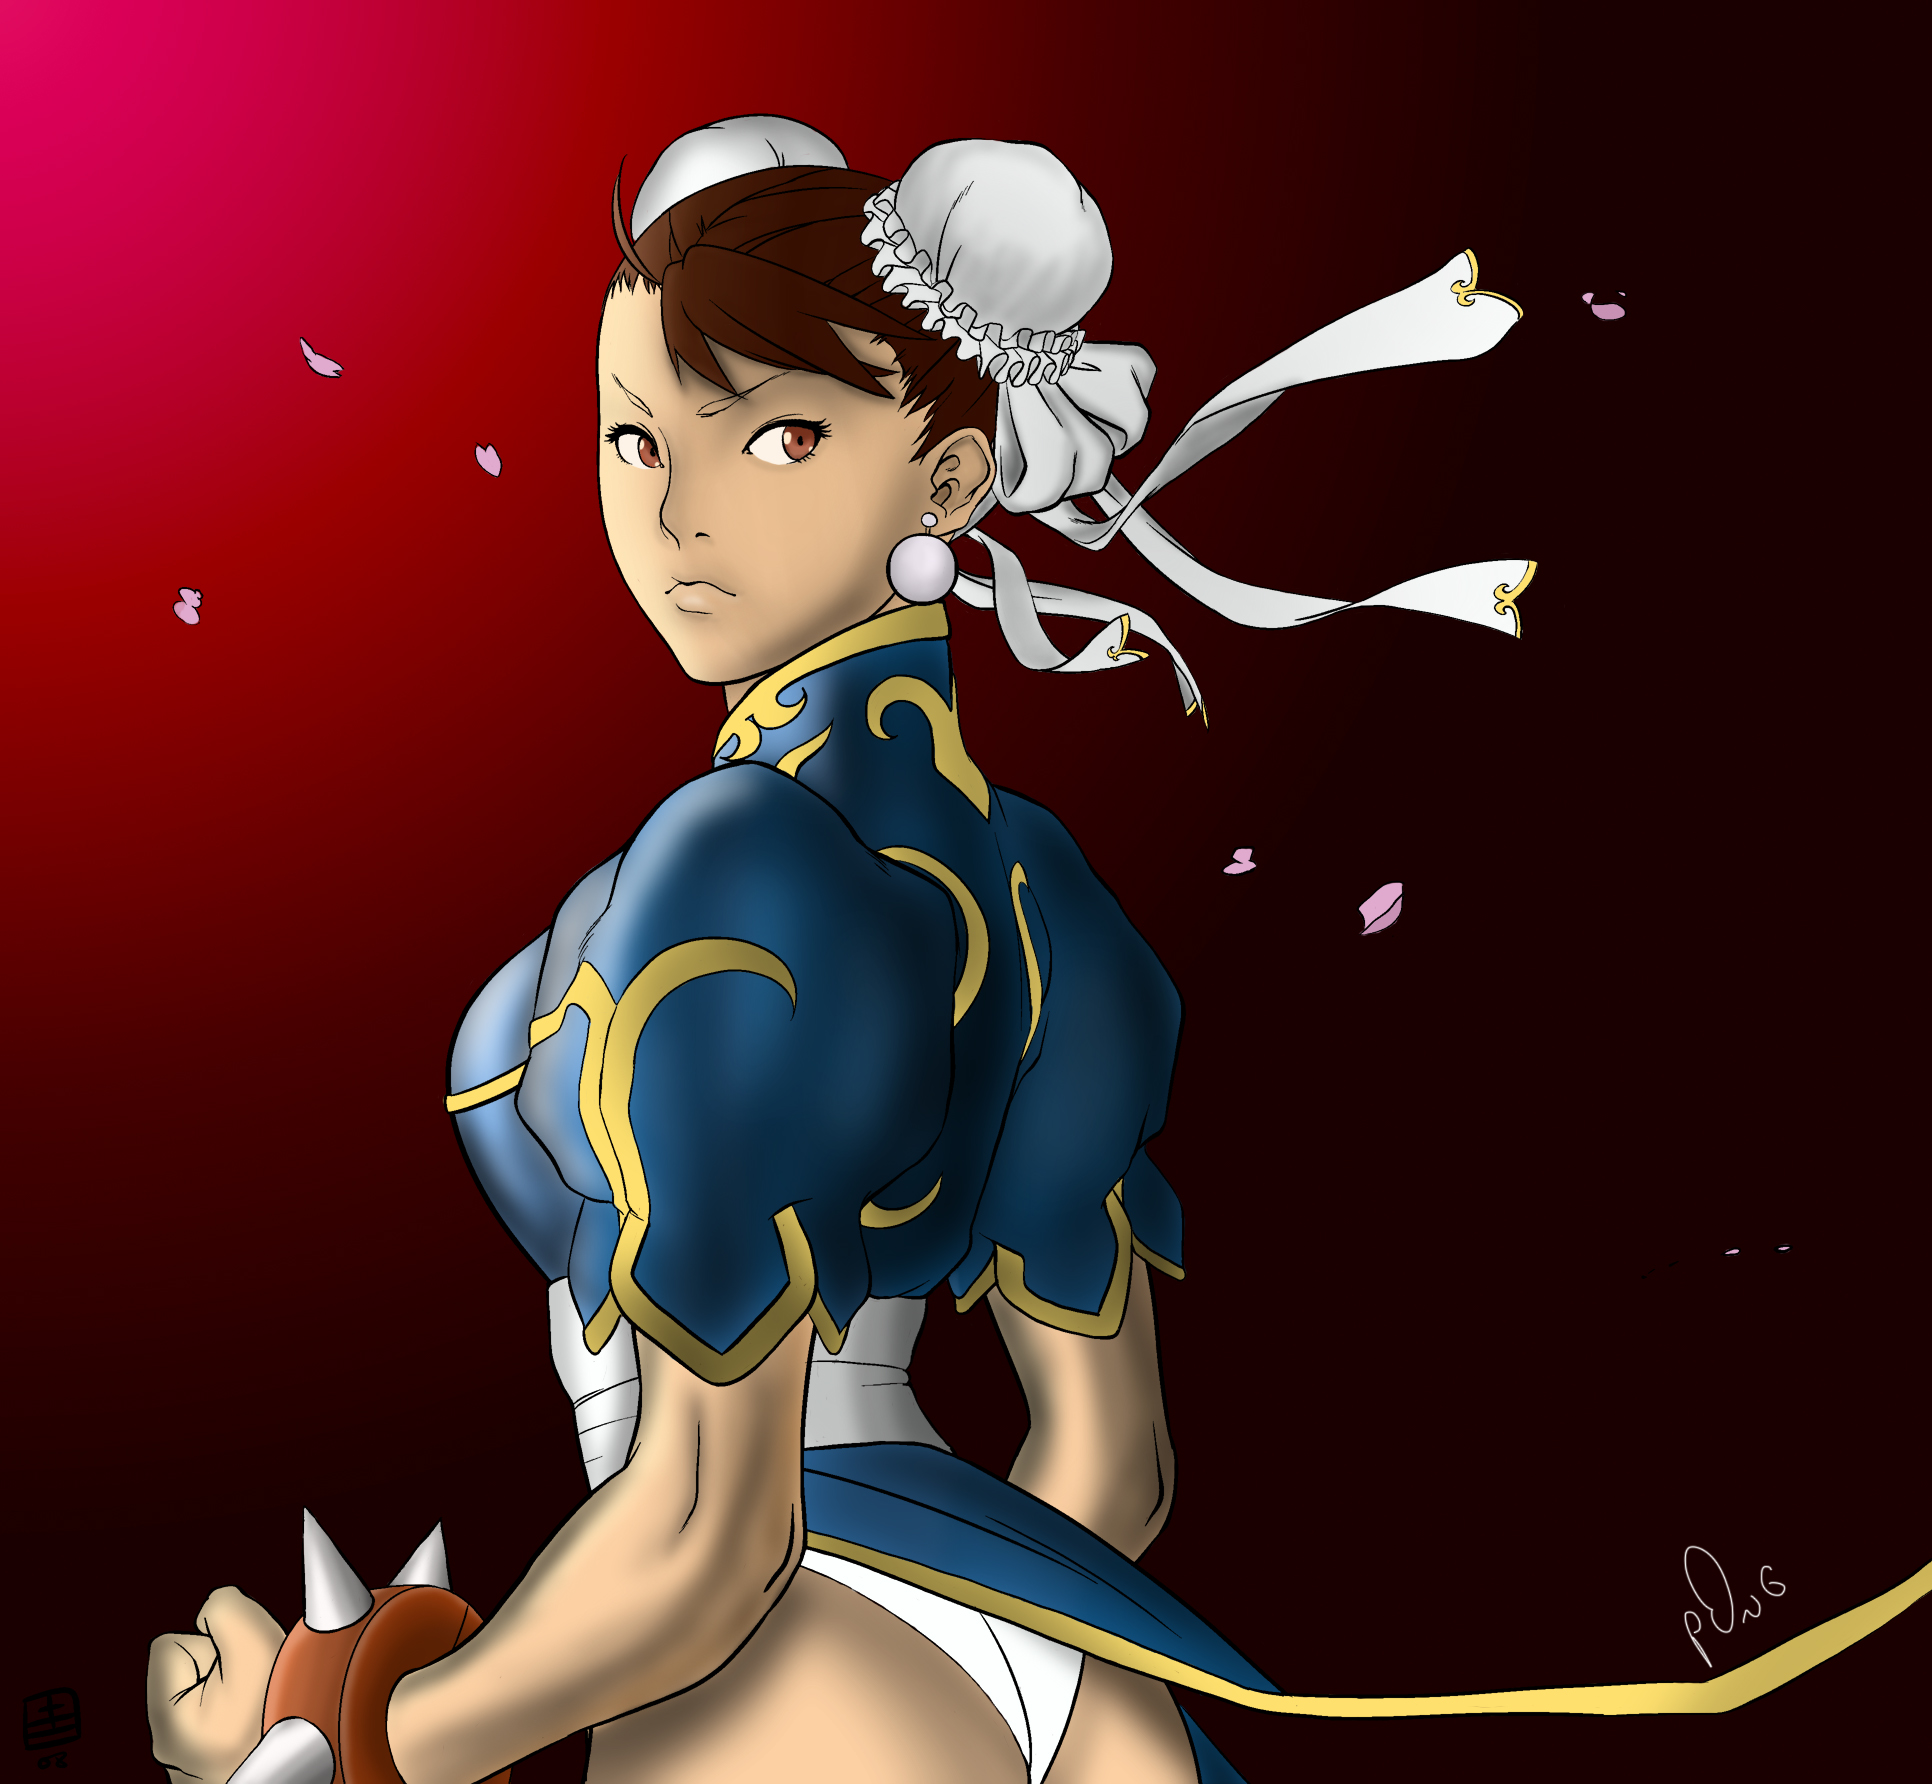 Chun-li with more shadow by p0ngbr